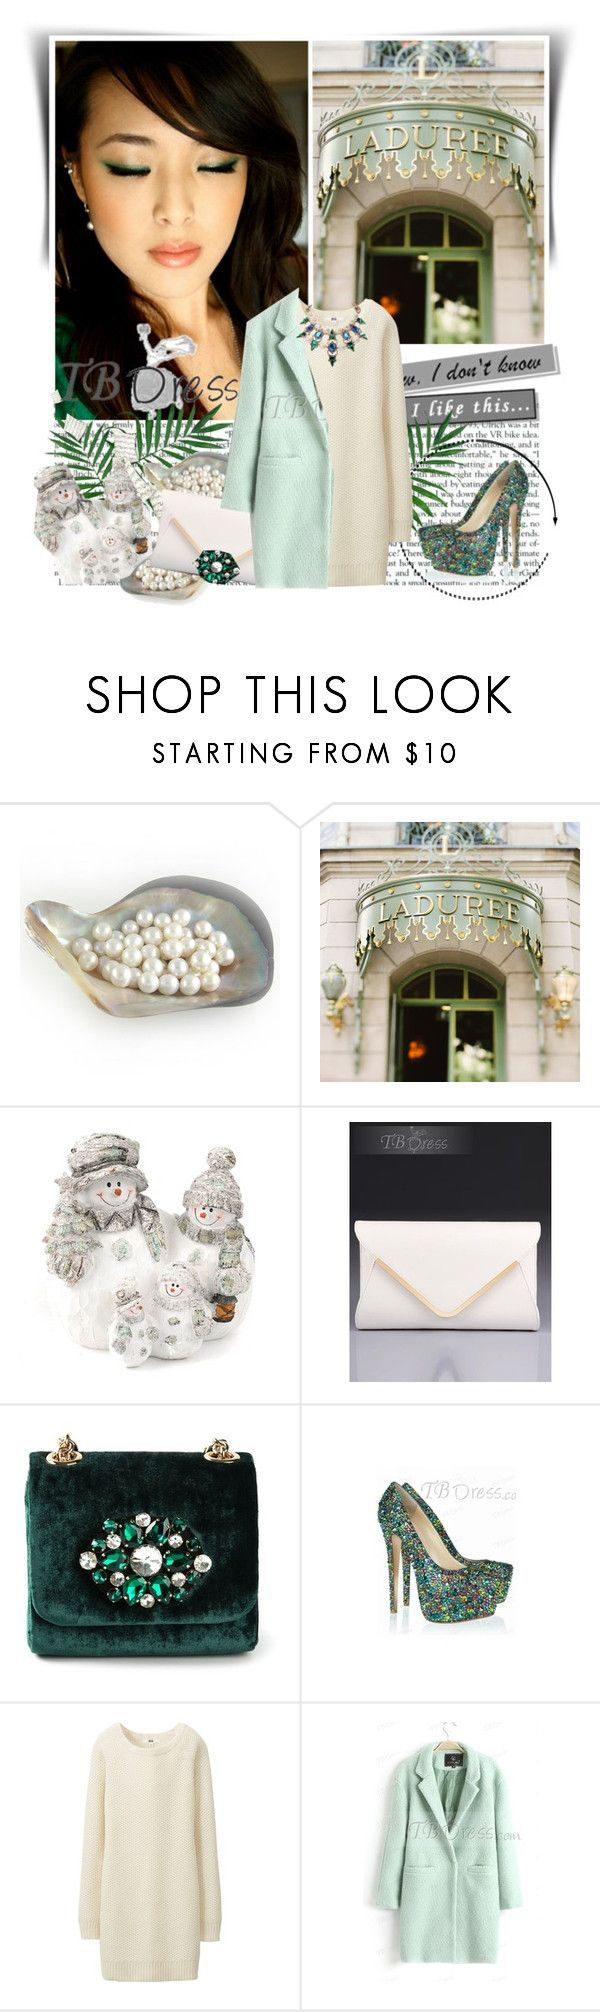 """""""TB Dress"""" by dalila-mujic ❤ liked on Polyvore featuring Ladurée, Dolce&Gabbana, Uniqlo and tbdress"""